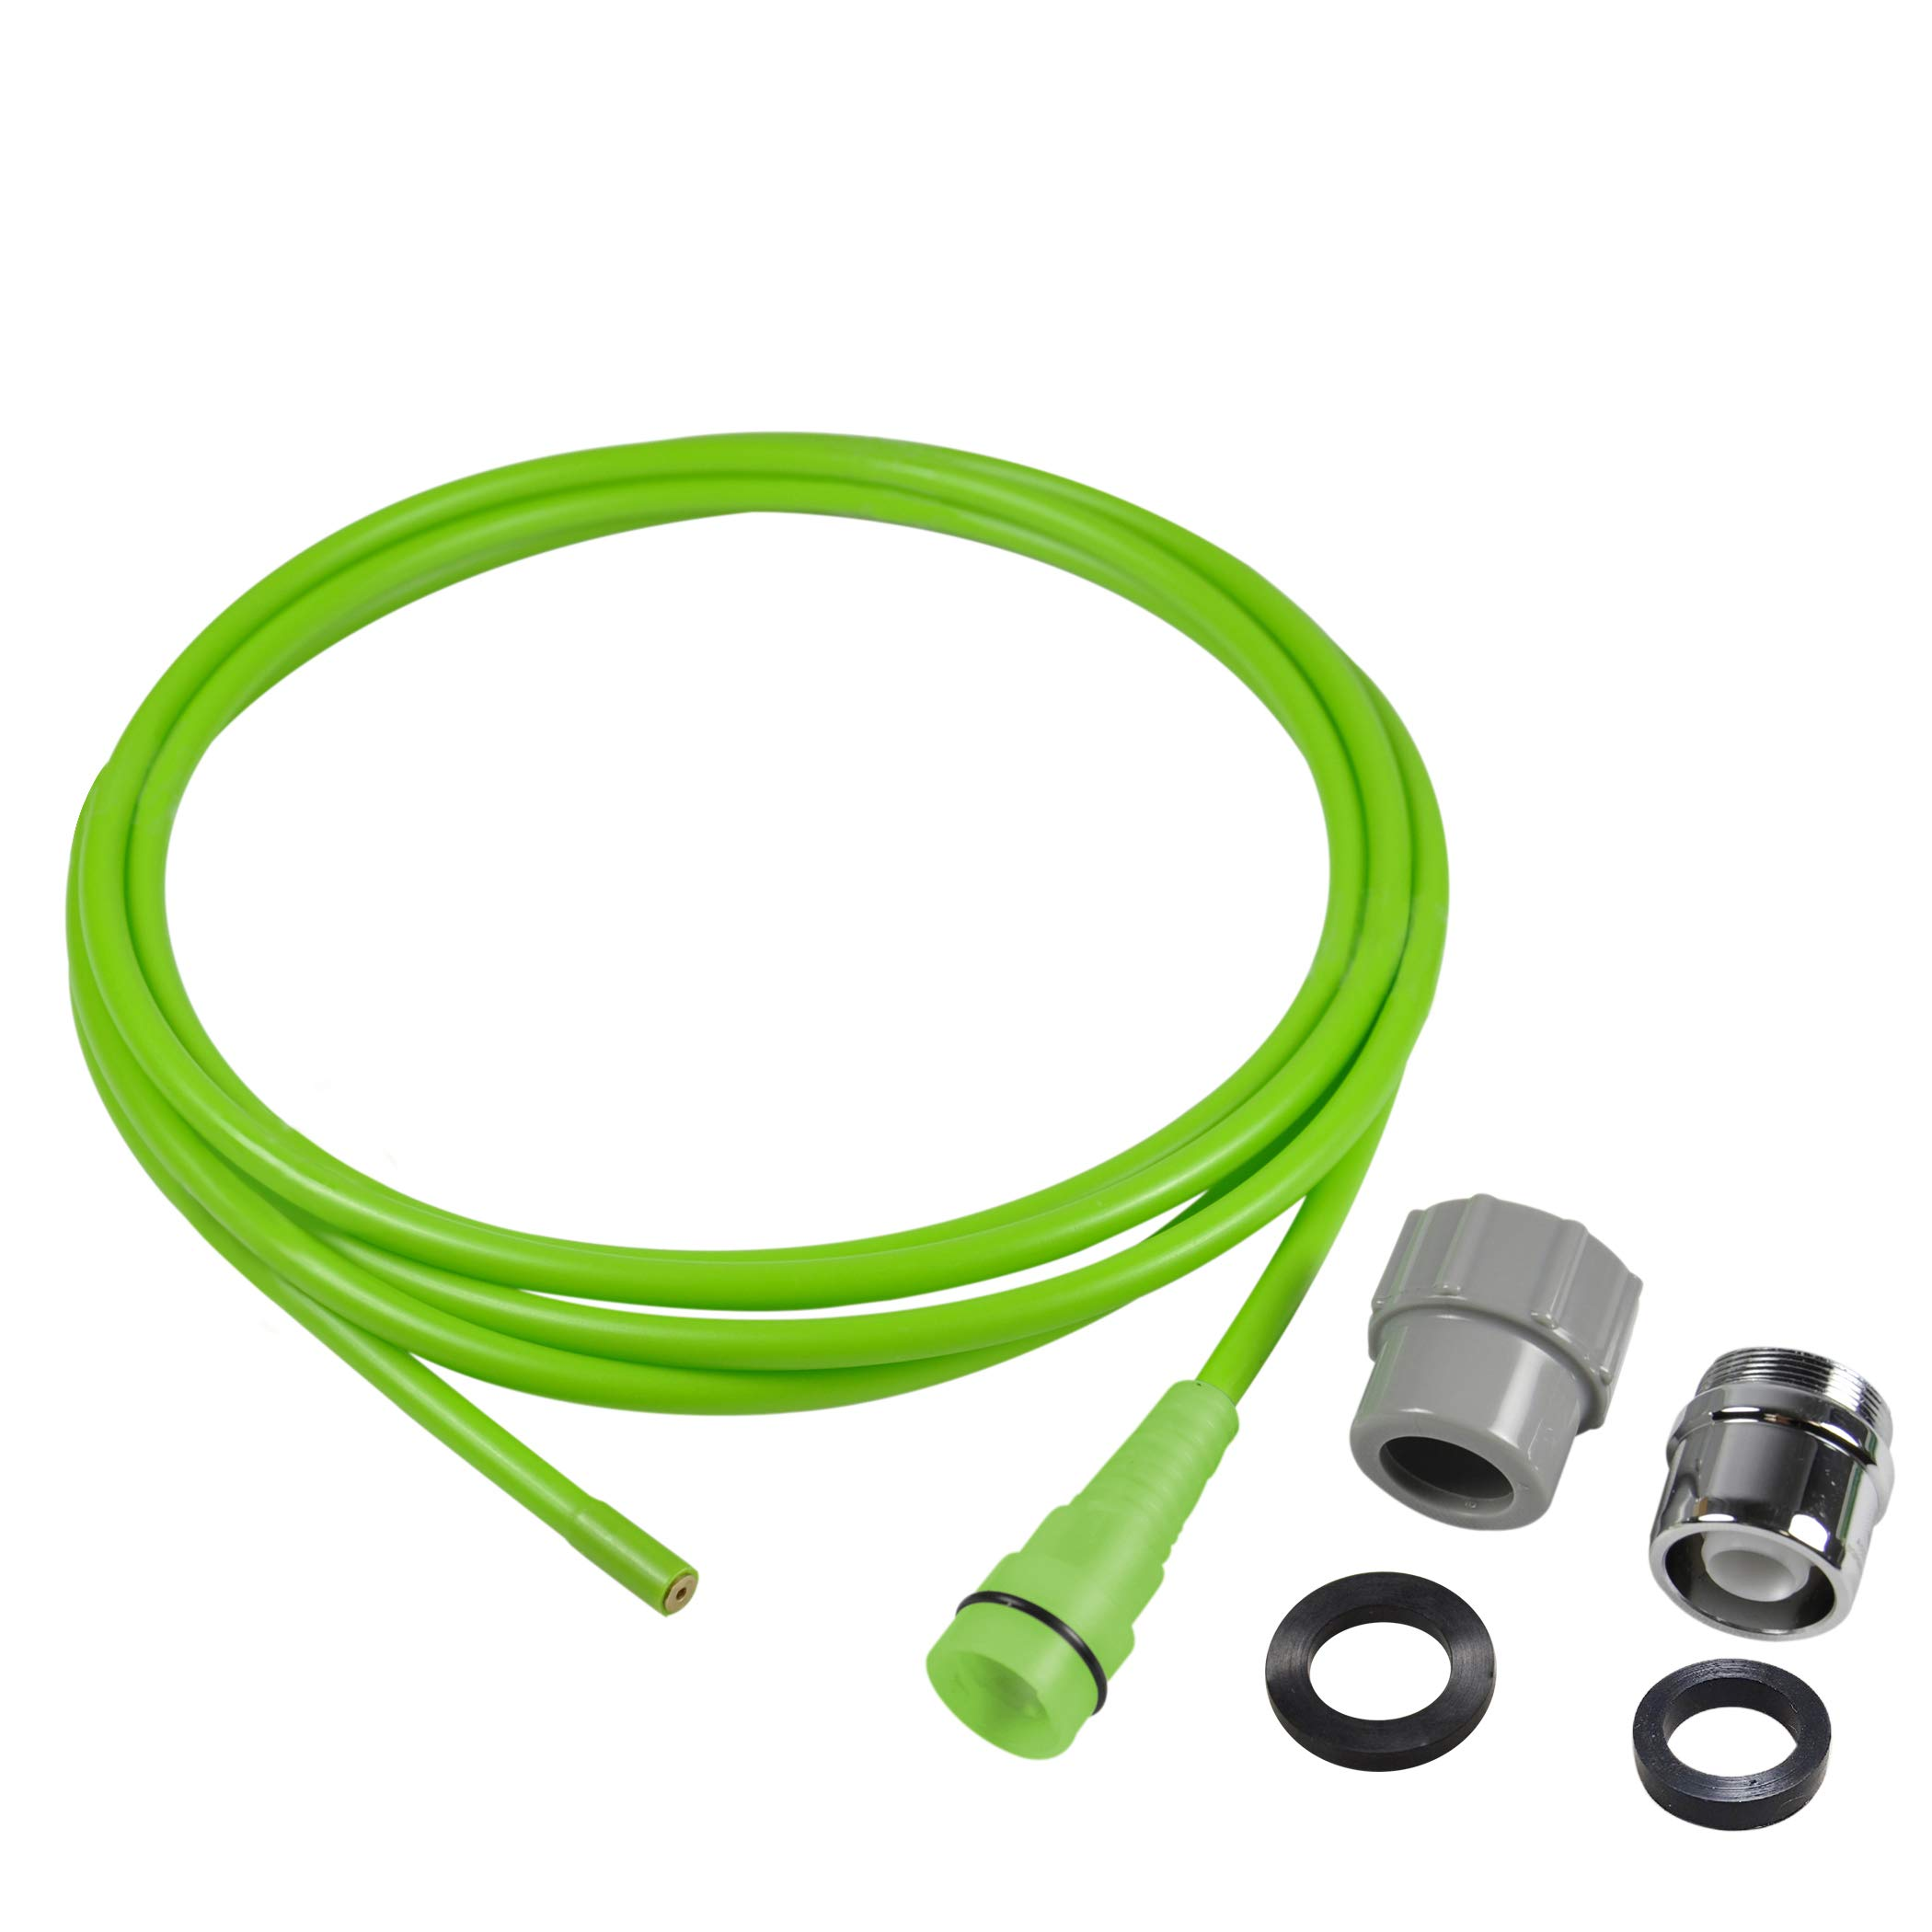 Next By Danco 10881   Clear It Water Pressure Indoor/Outdoor Drain Opener & Cleaner   Drain Clog Remover   Drain Snake, Snare Drain Auger   Quick Connect to Sink Faucets & Garden Hose   10-Ft. Hose